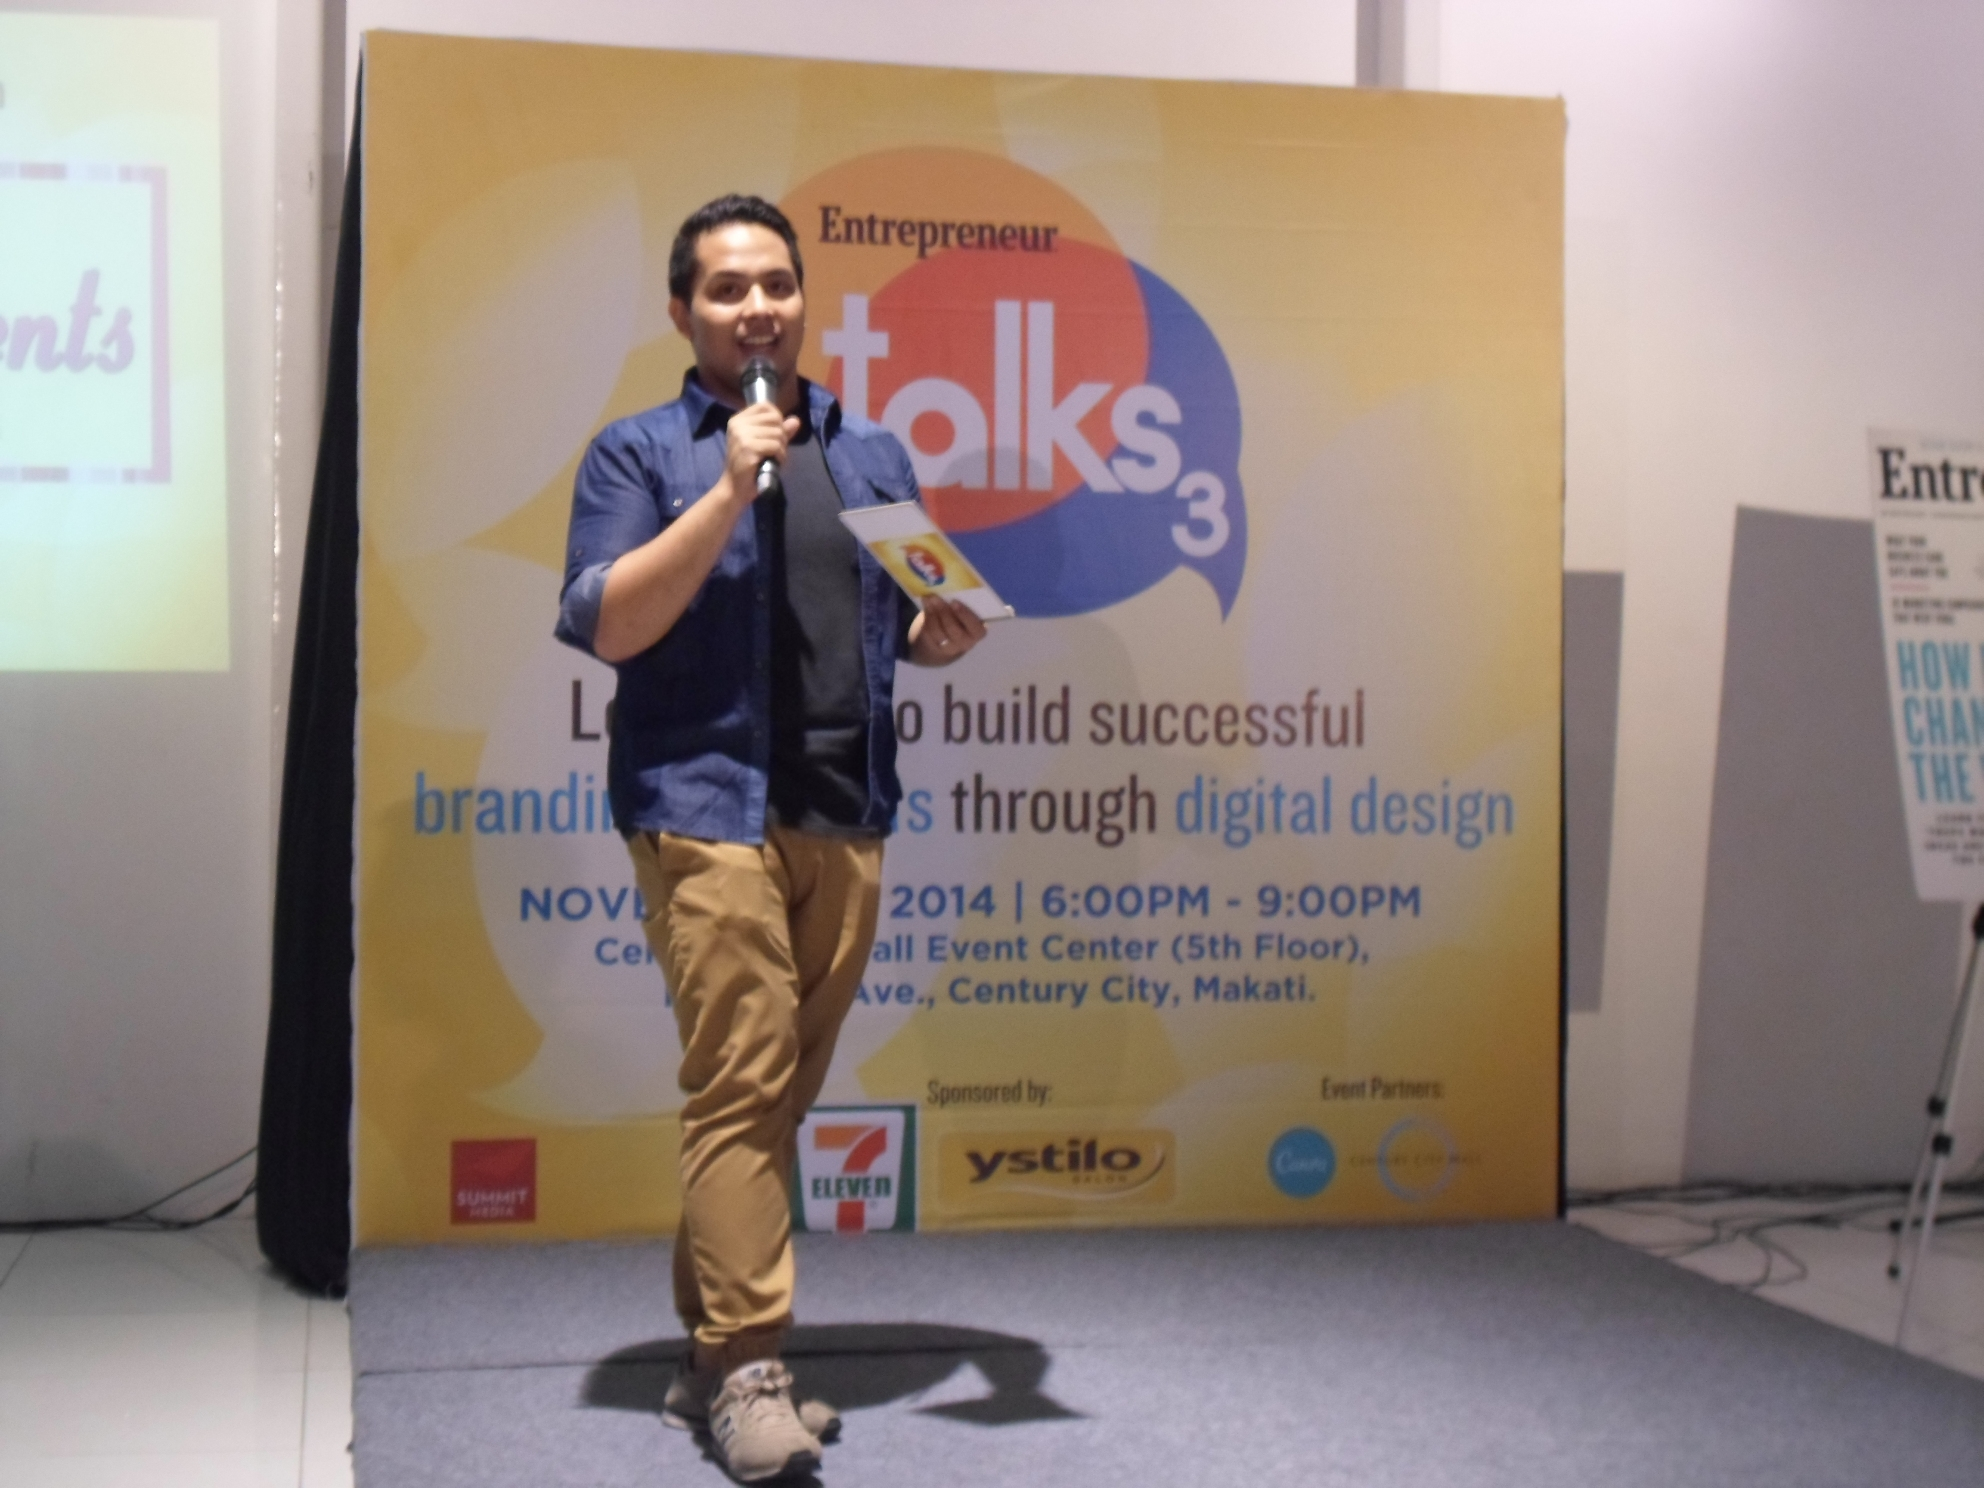 Entrepreneur Philippines holds 'Entrepreneur Talks 3'